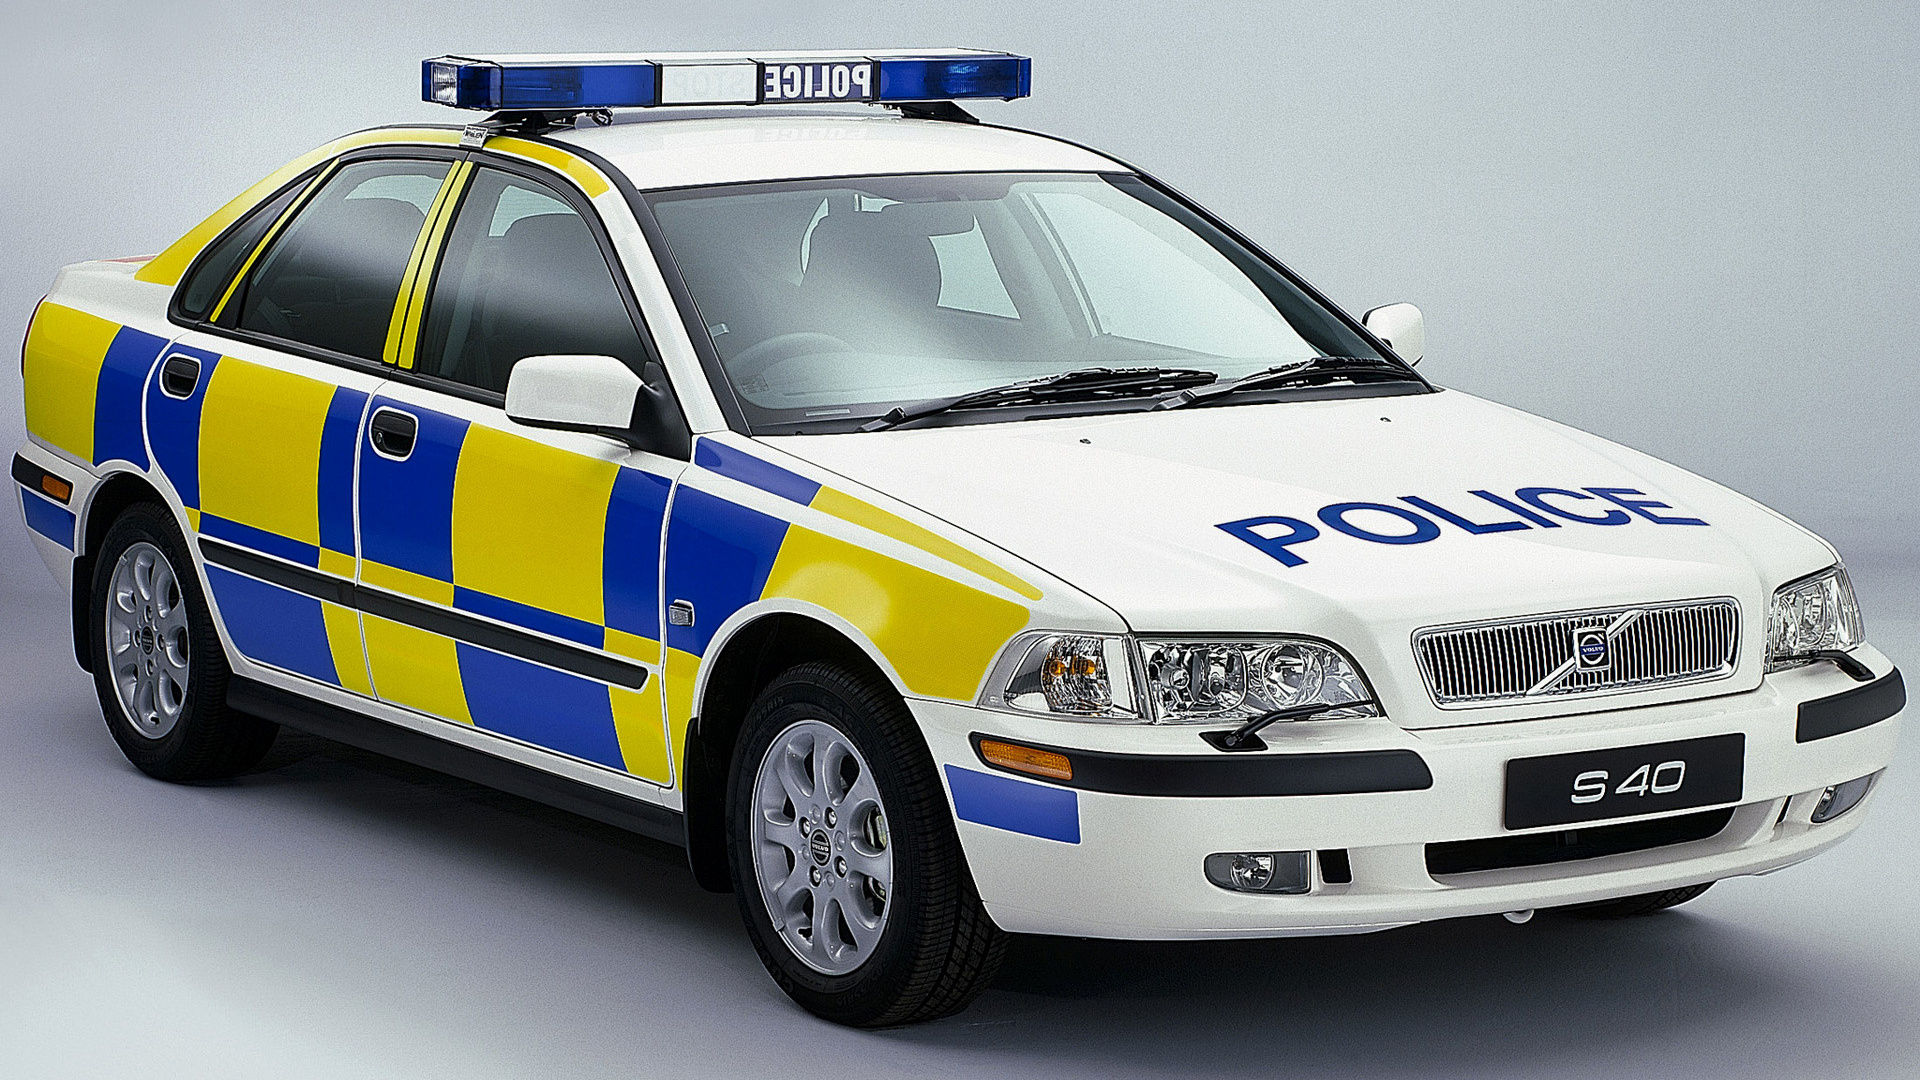 Volvo S40 Police 2000 UK Wallpapers and HD Images  Car Pixel